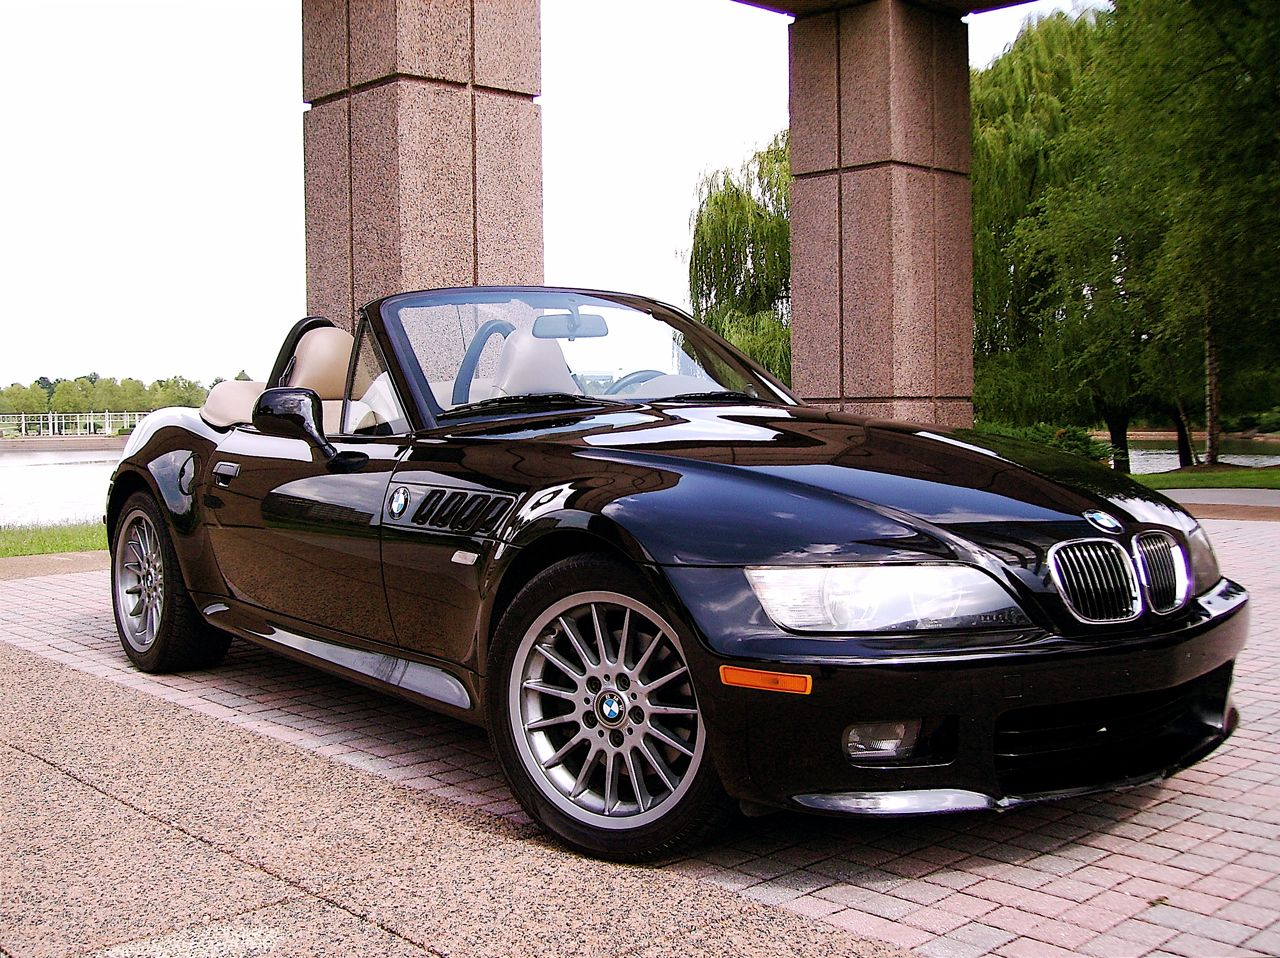 hight resolution of bmw z3 roadster 1996 images 9